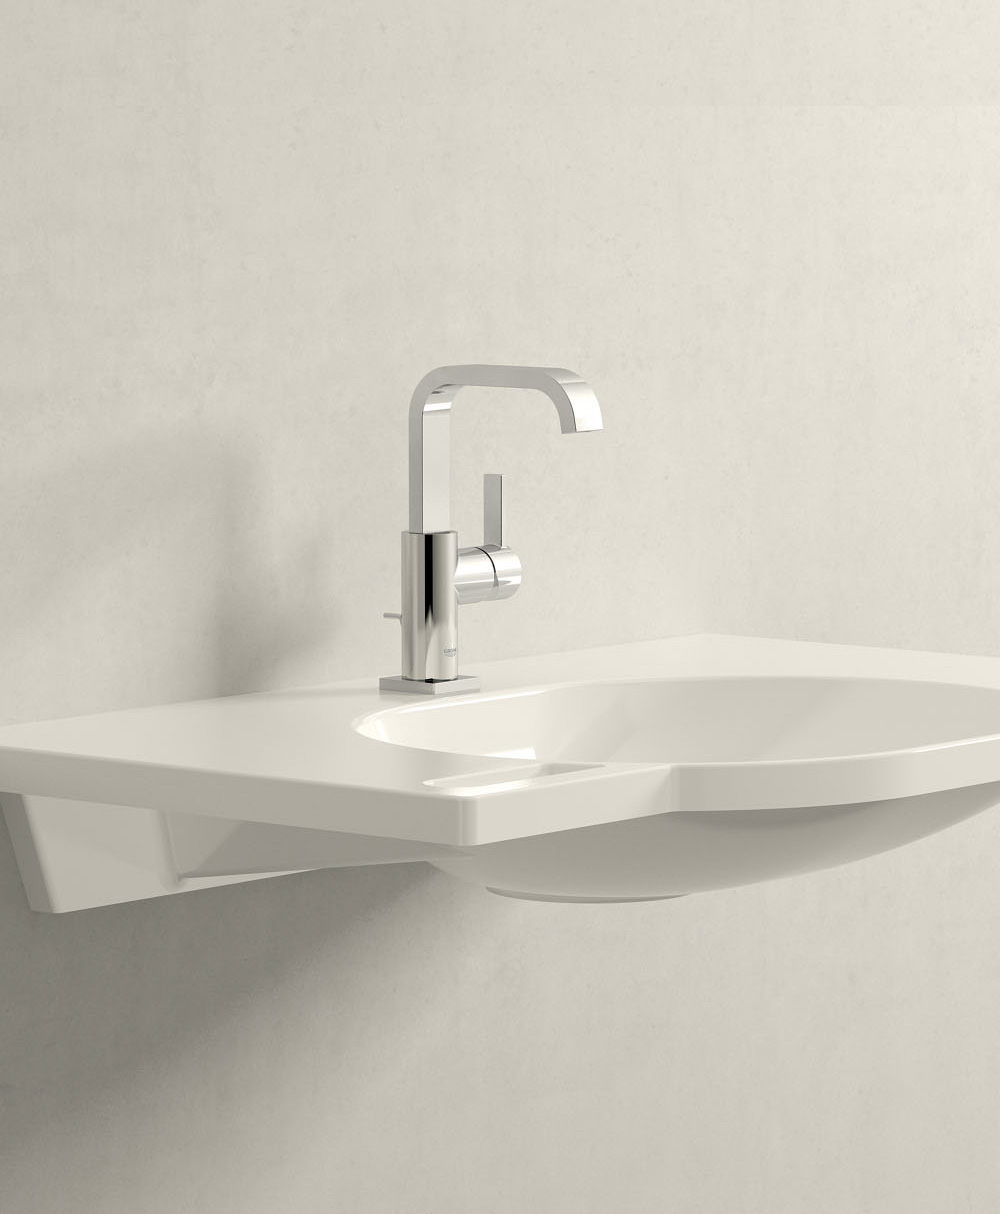 Grohe bathroom accessories - Grohe